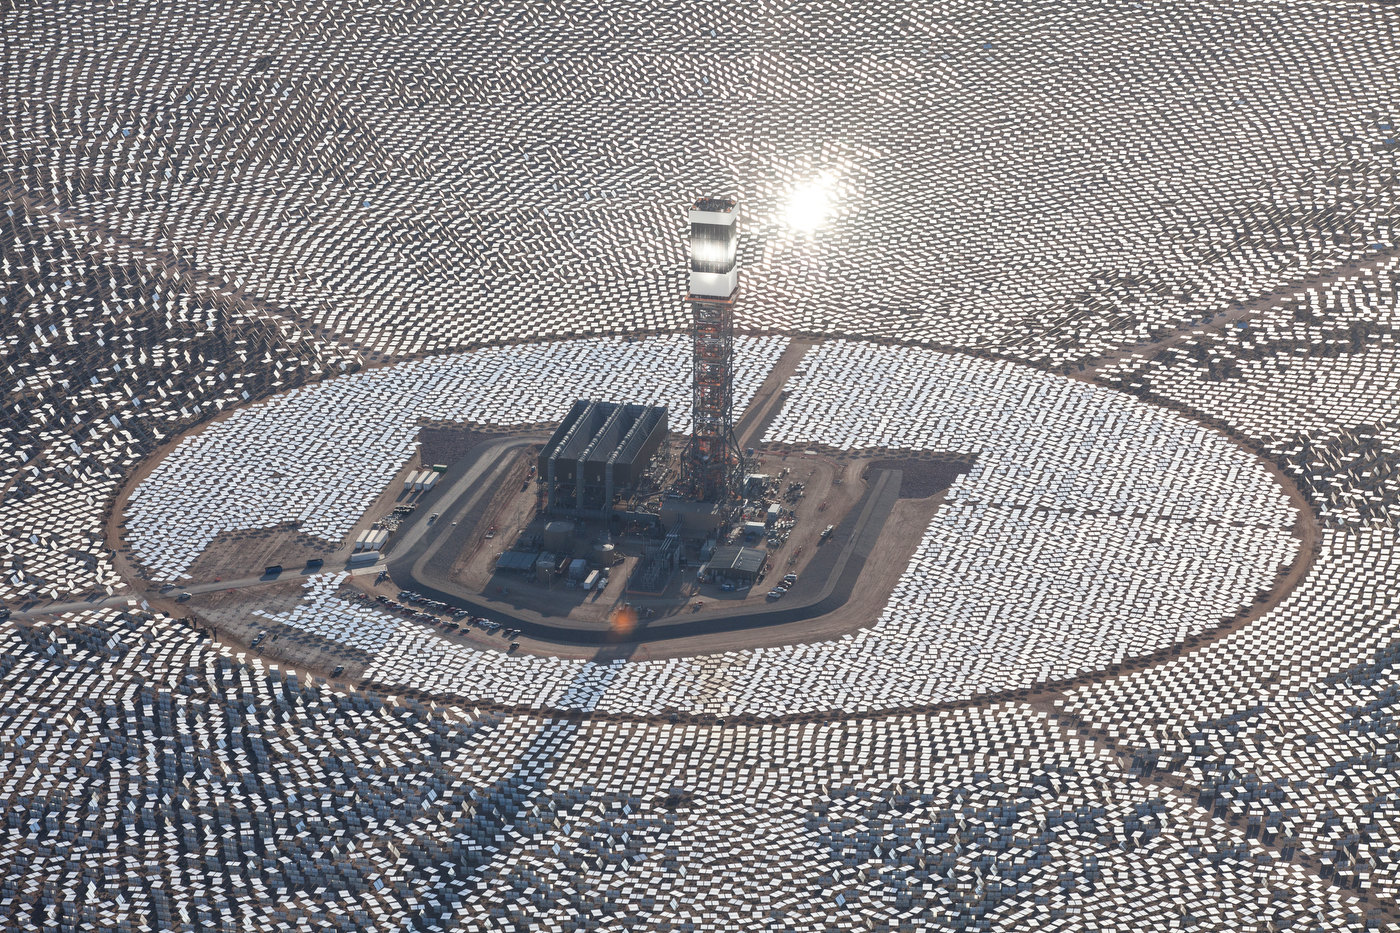 IVANPAH, CALIFORNIA, APRIL 05 2013: The top of Tower 1's is {quote}lit{quote} as a steam blow test is in progress in this aerial view of Tower 1 and its heliostats at the Ivanpah Solar Power Facility. Located in the Mojave Desert 40 miles southwest of Las Vegas, The Ivanpah Solar Power Facility is a solar thermal power project, currently under construction, with a planned capacity of 392 megawatts, enough to power approximately 140,000 houses. It will deploy 170,000 heliostat mirrors spread over 4,000 hectares, focusing solar energy on boilers located atop three solar power towers, generating steam to drive specially adapted steam turbines The project, developed by Bechtel, will cost $2.2 billion and be the largest solar farm in the world (photo Gilles Mingasson/Getty Images for Bechtel).